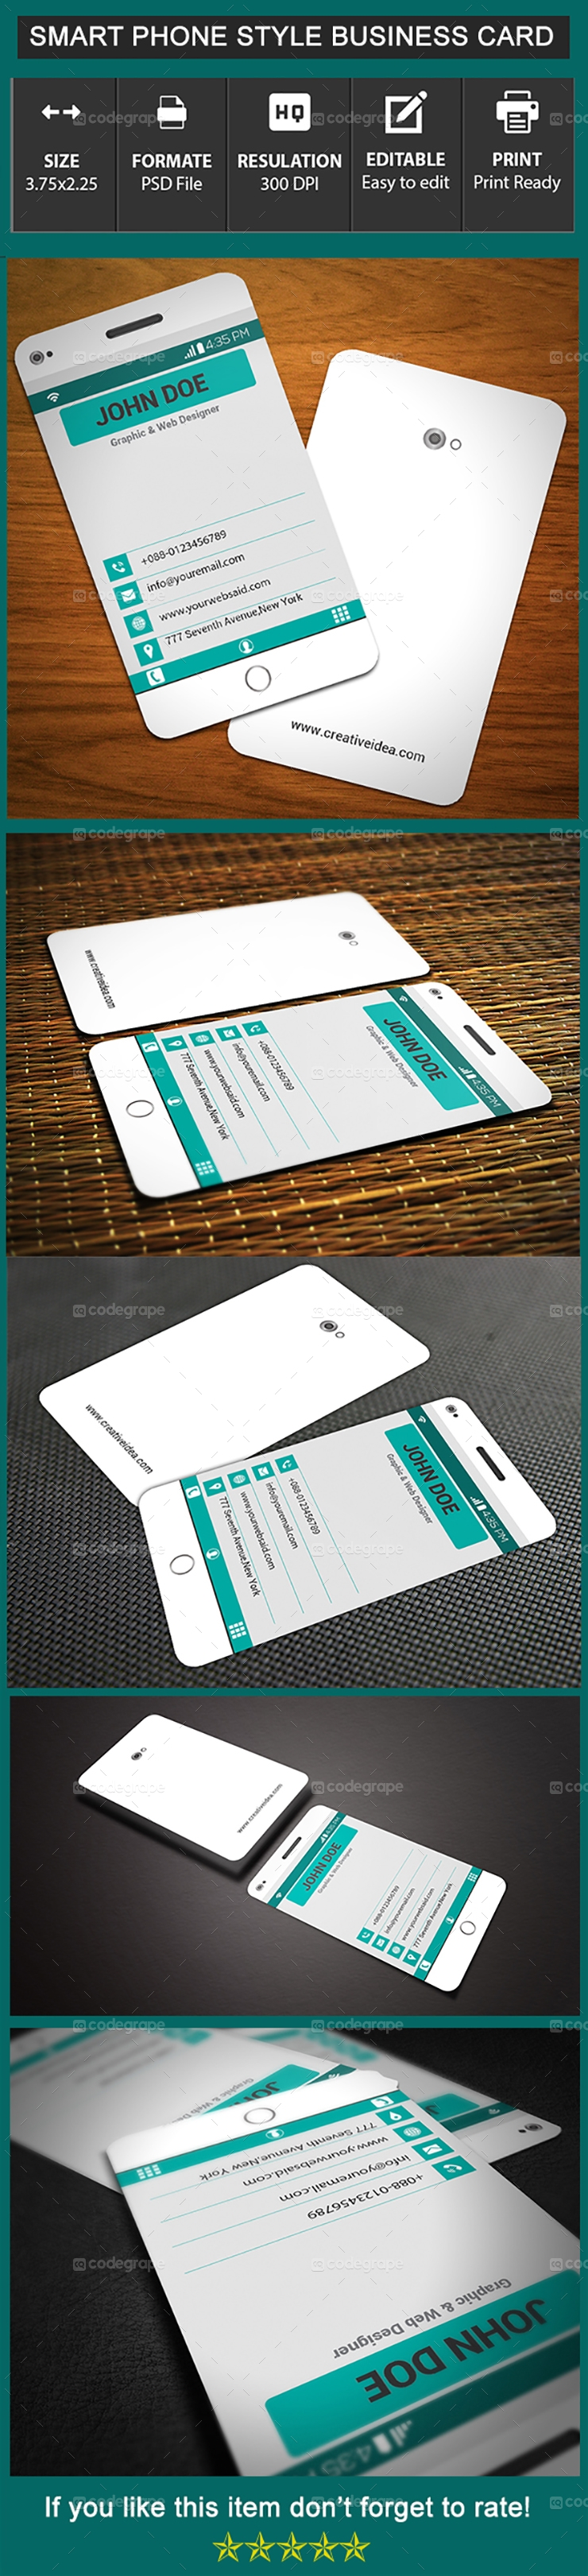 Phone Style Business Card